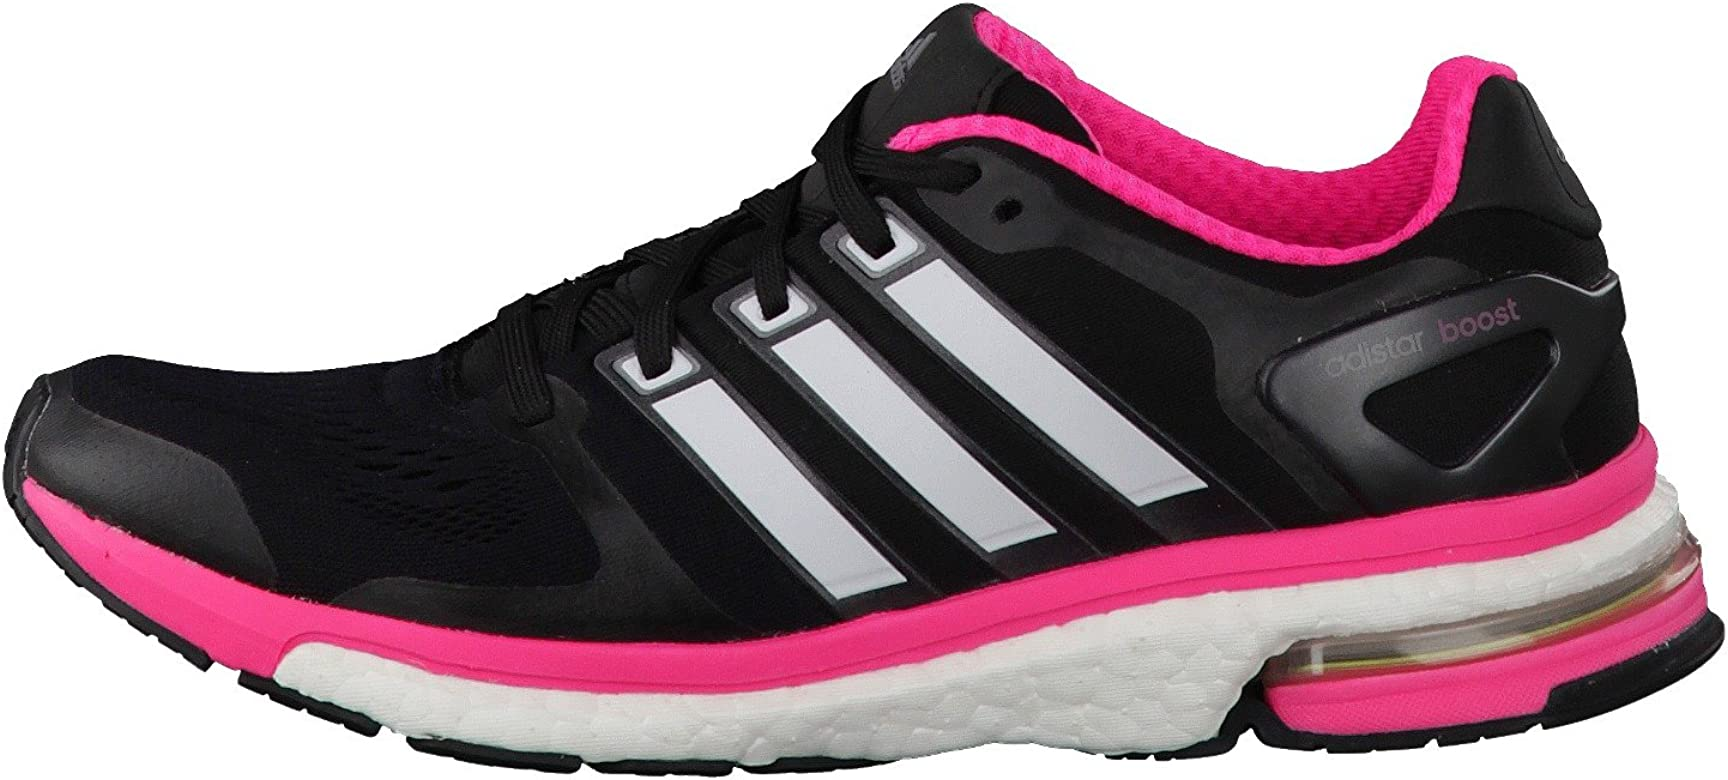 Adistar, Boost - Zapatillas de running, color negro, talla 40 EU ...